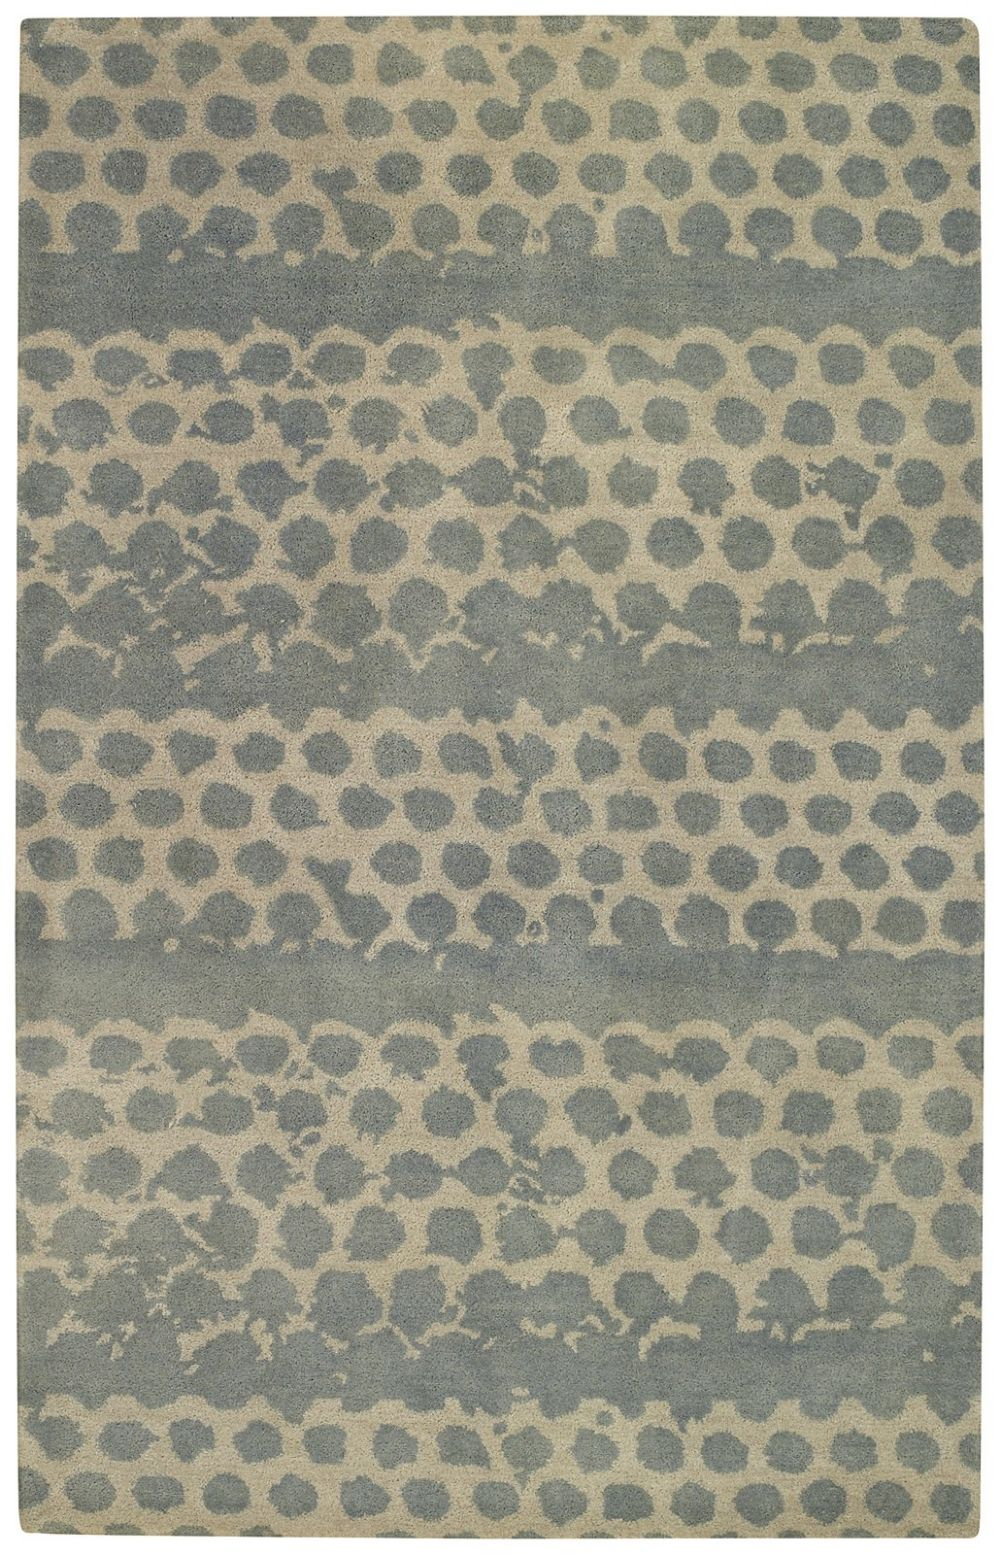 capel bee hives contemporary area rug collection